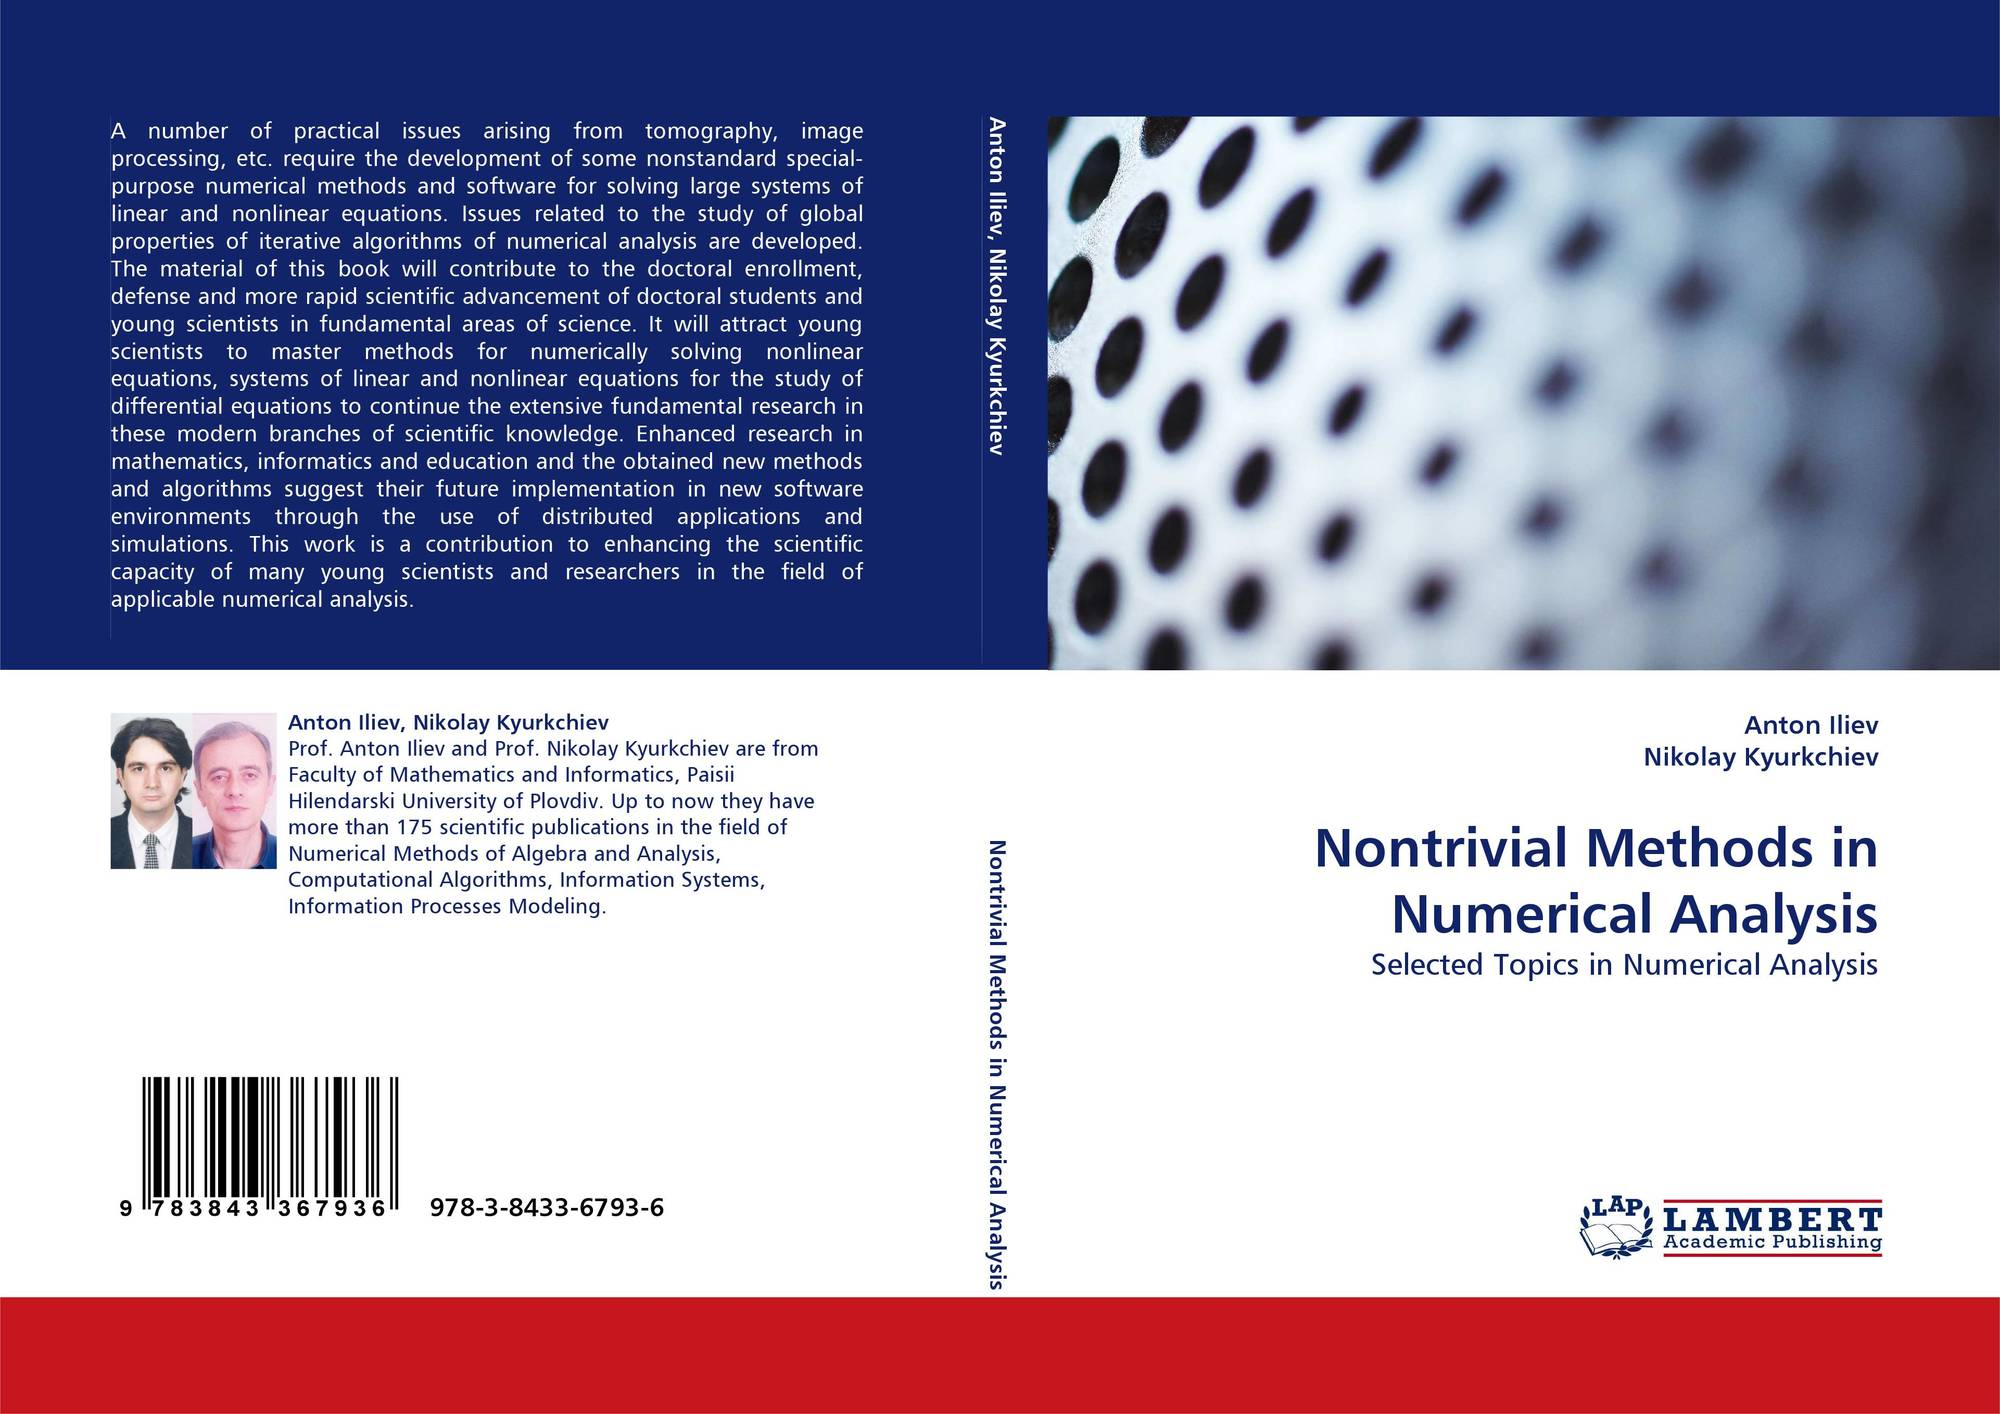 Nontrivial Methods in Numerical Analysis, 978-3-8433-6793-6